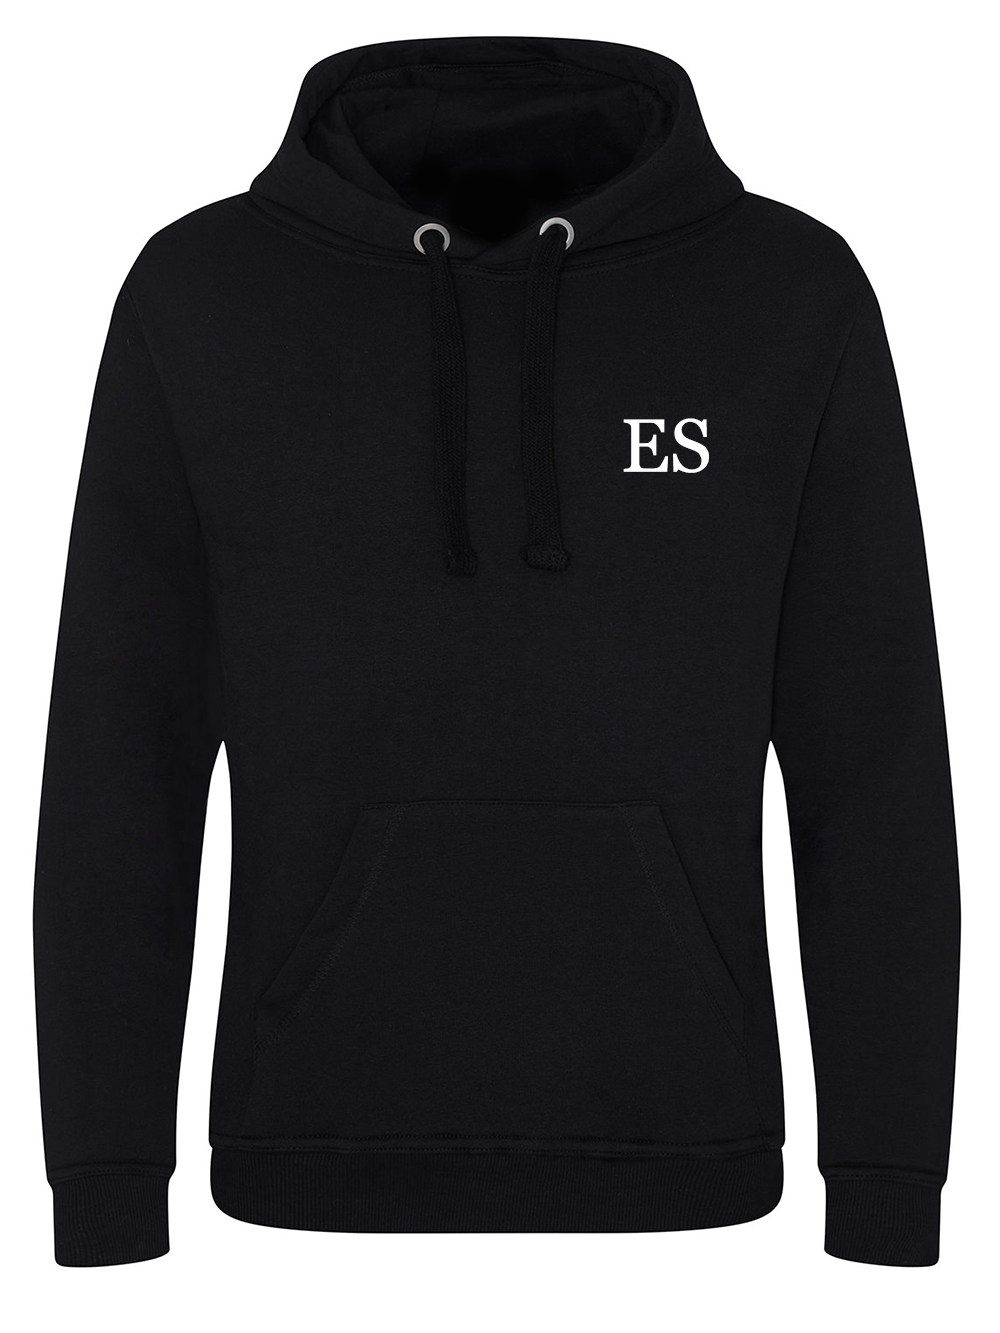 Mens Initial Hooded Jumper – Black